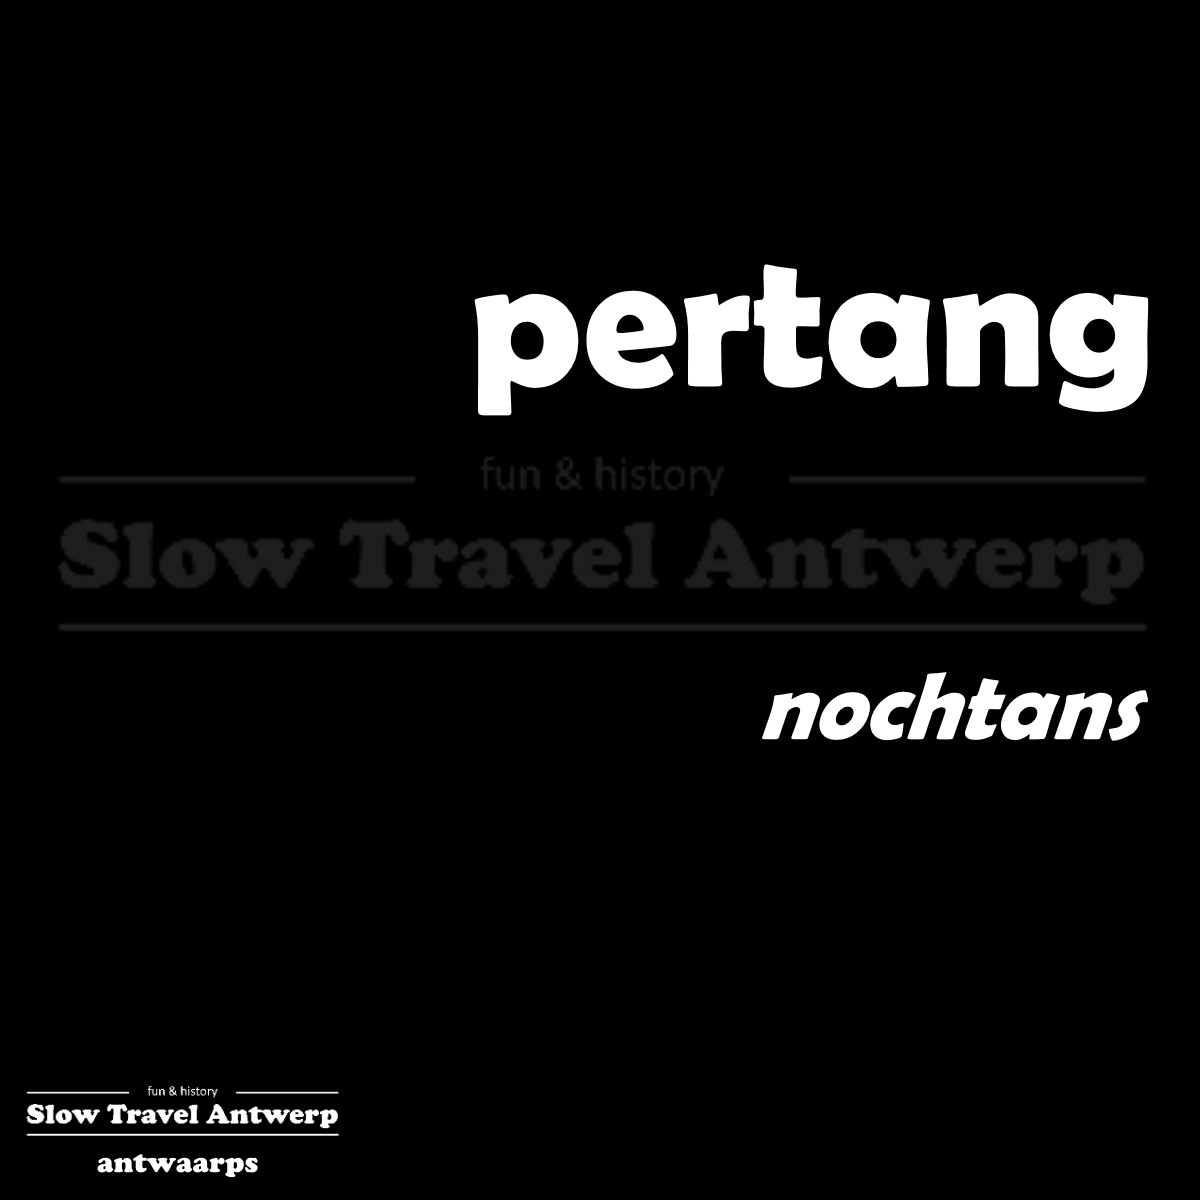 pertang – nochtans – nevertheless